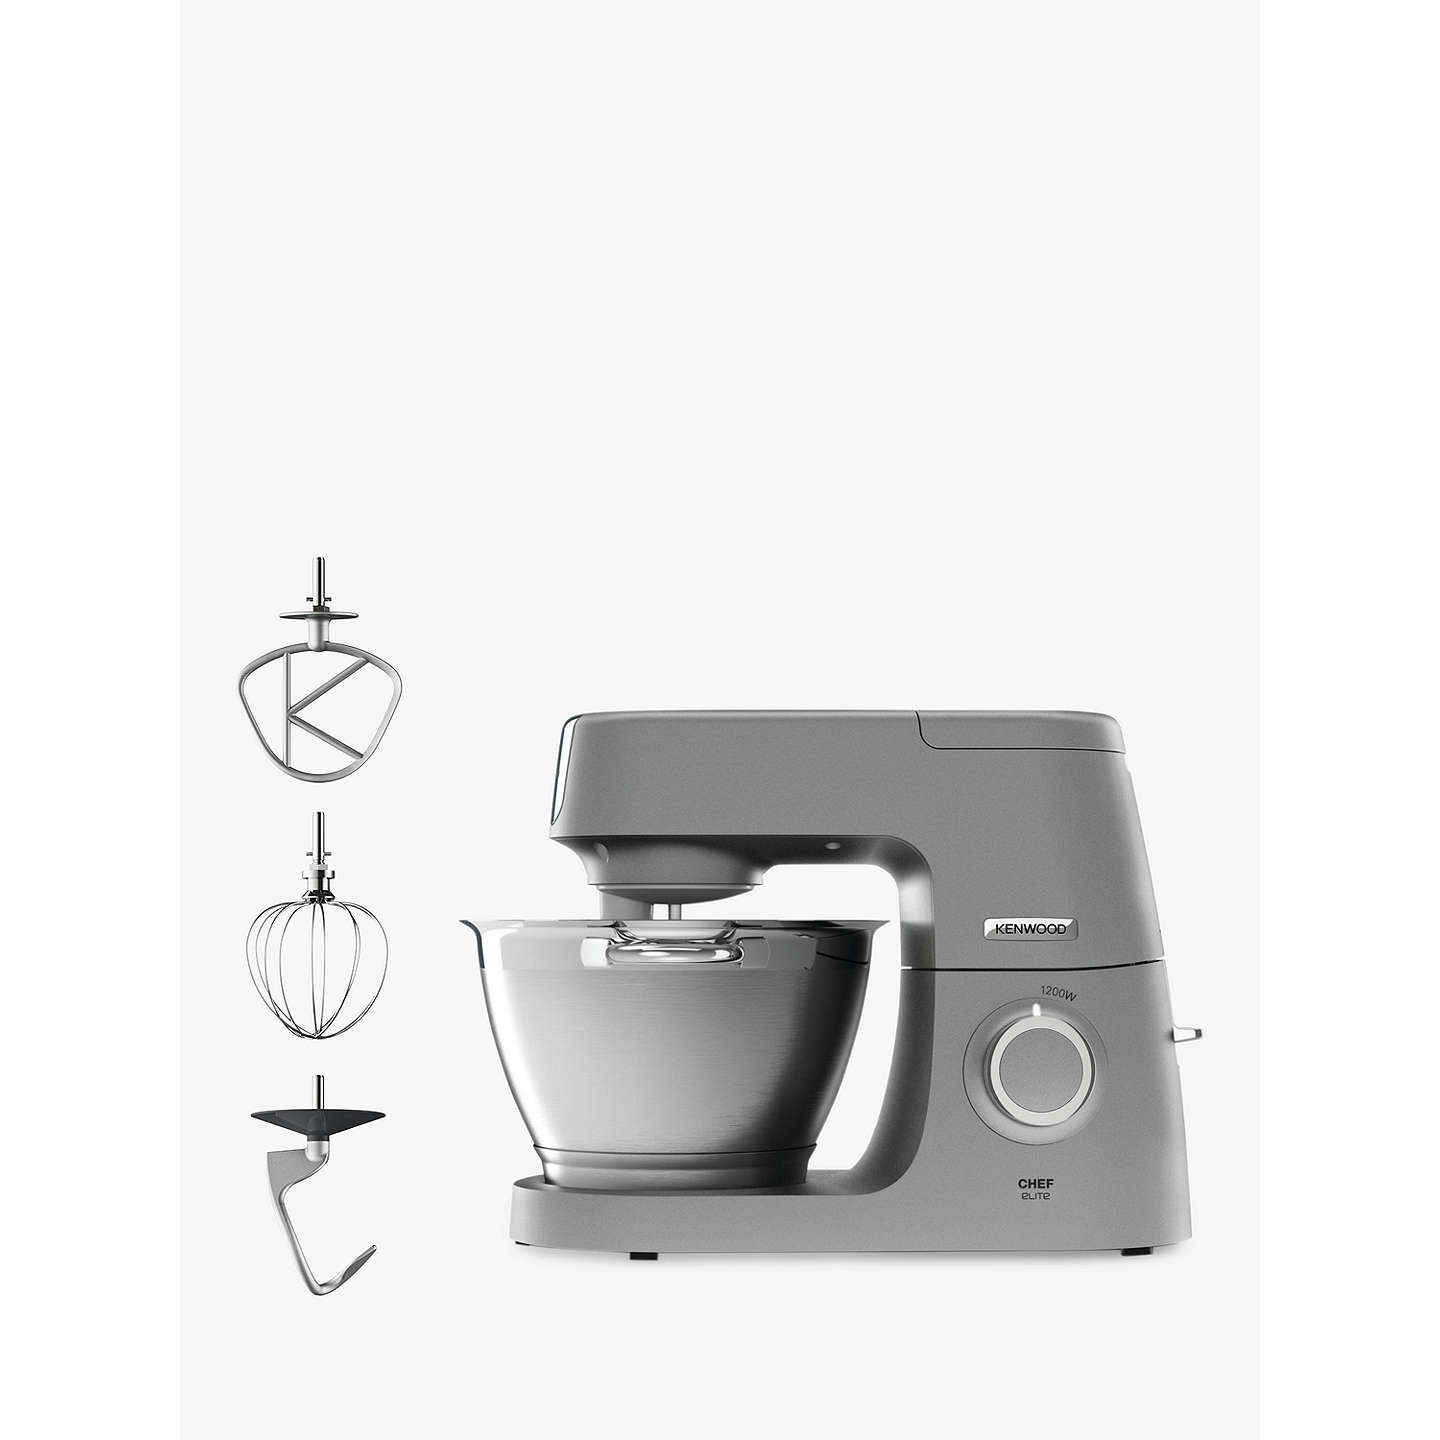 Kenwood kvc5100s chef elite stand mixer silver at john lewis buykenwood kvc5100s chef elite stand mixer silver online at johnlewis forumfinder Gallery